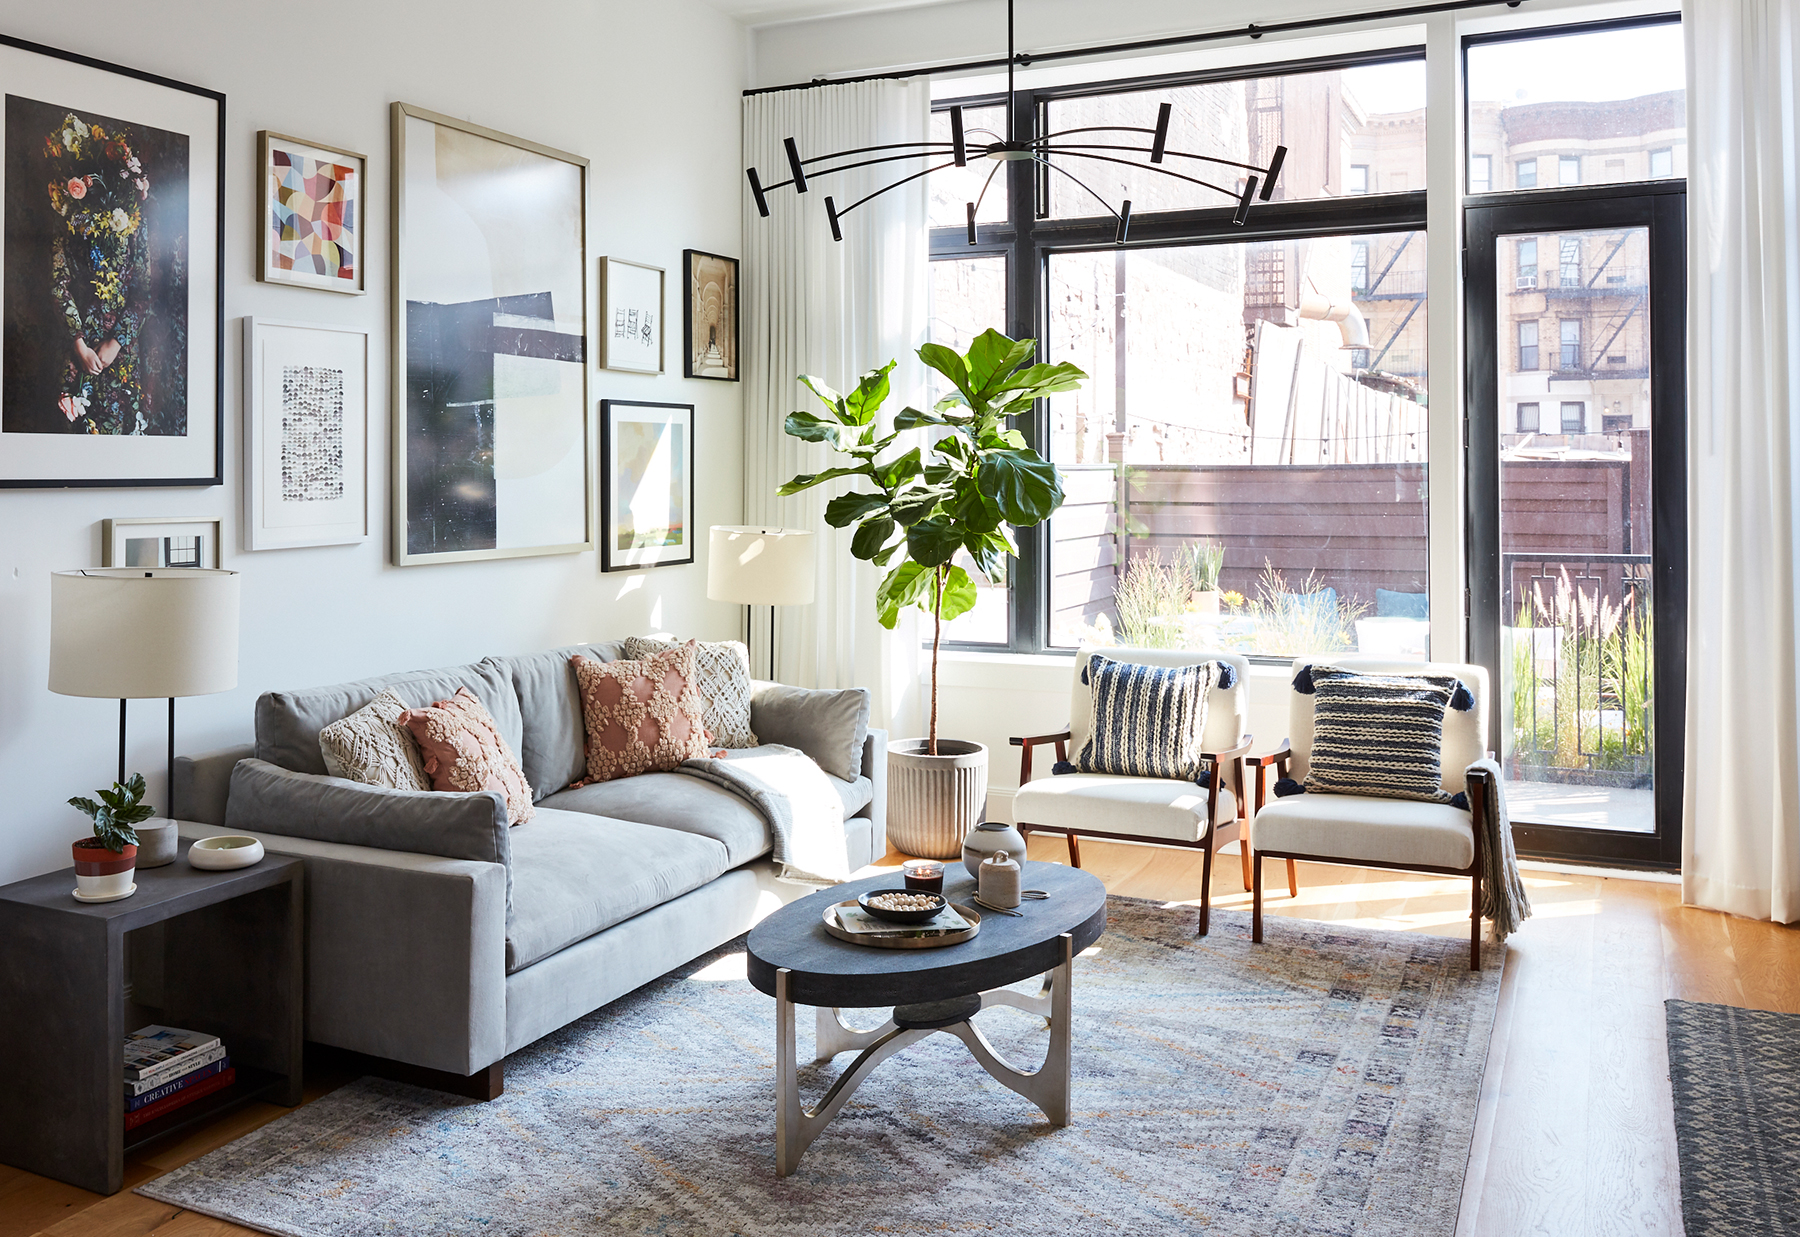 Step Inside the 2019 Real Simple Home—Find 250+ Design Ideas ...